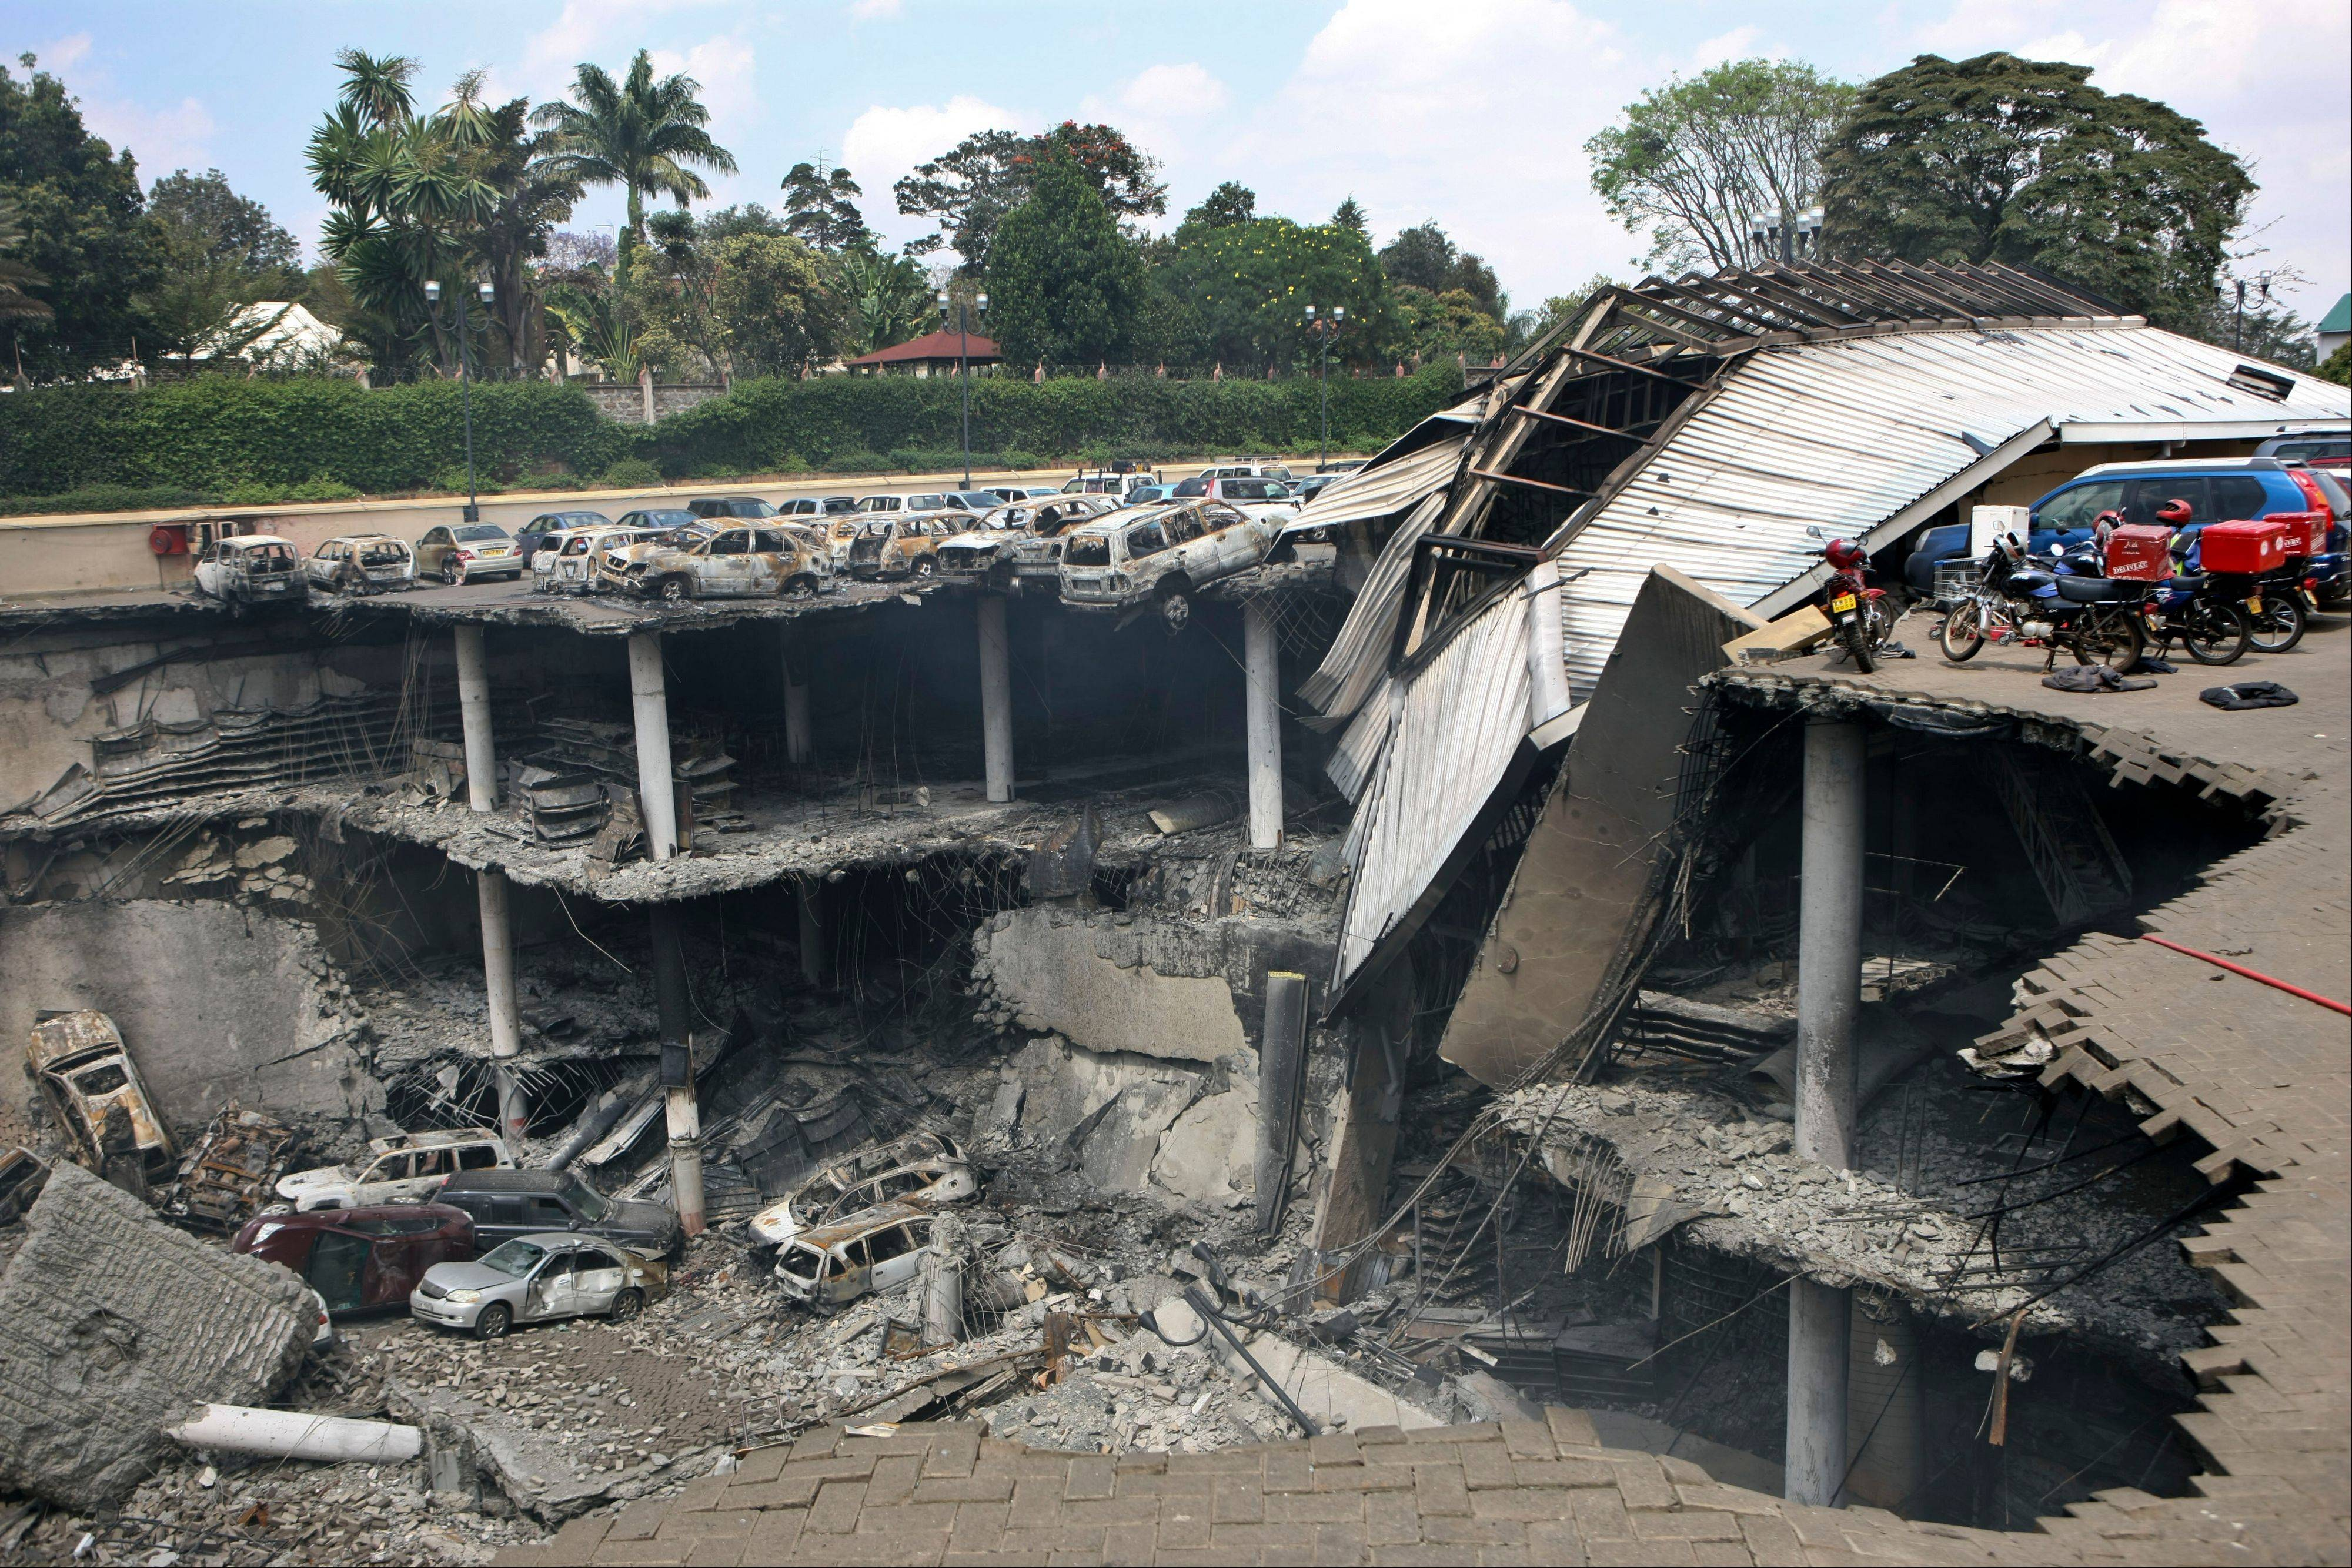 Official says Kenyan forces caused mall collapse